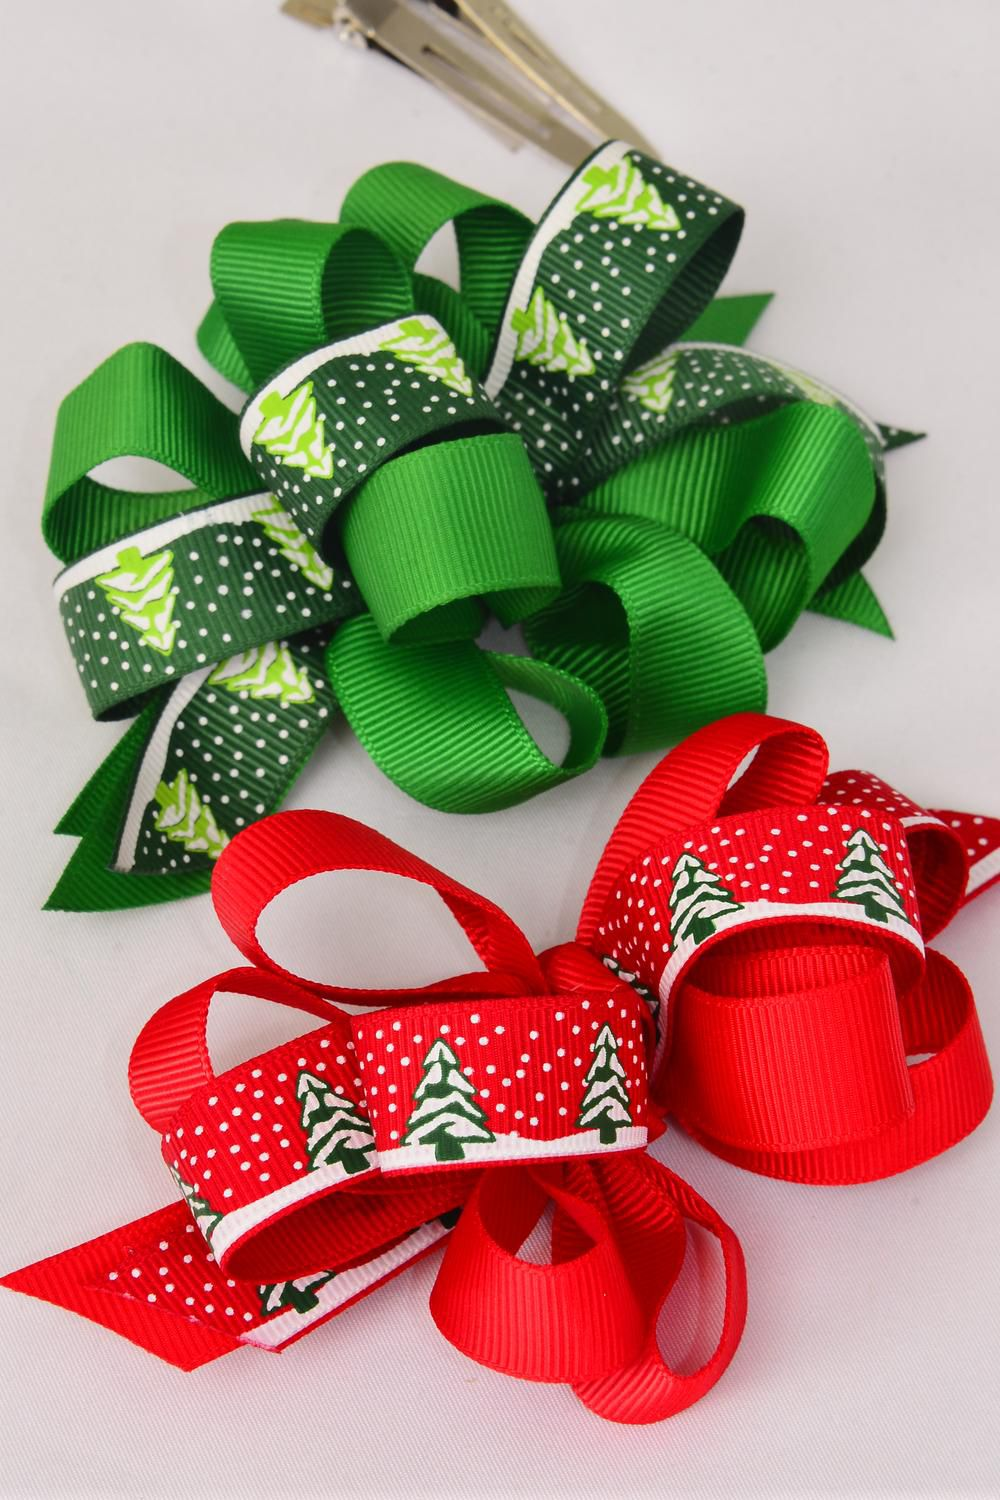 "Hair Bow Large Xmas Grosgrain Loop Bow Tree & Snows Alligator Clip/DZ **Alligator Clip** Bow Size-4.5 x 3.5"" Wide,6 Green & 6 Red Mix,Display Card & UPC Code,W Clear Box"